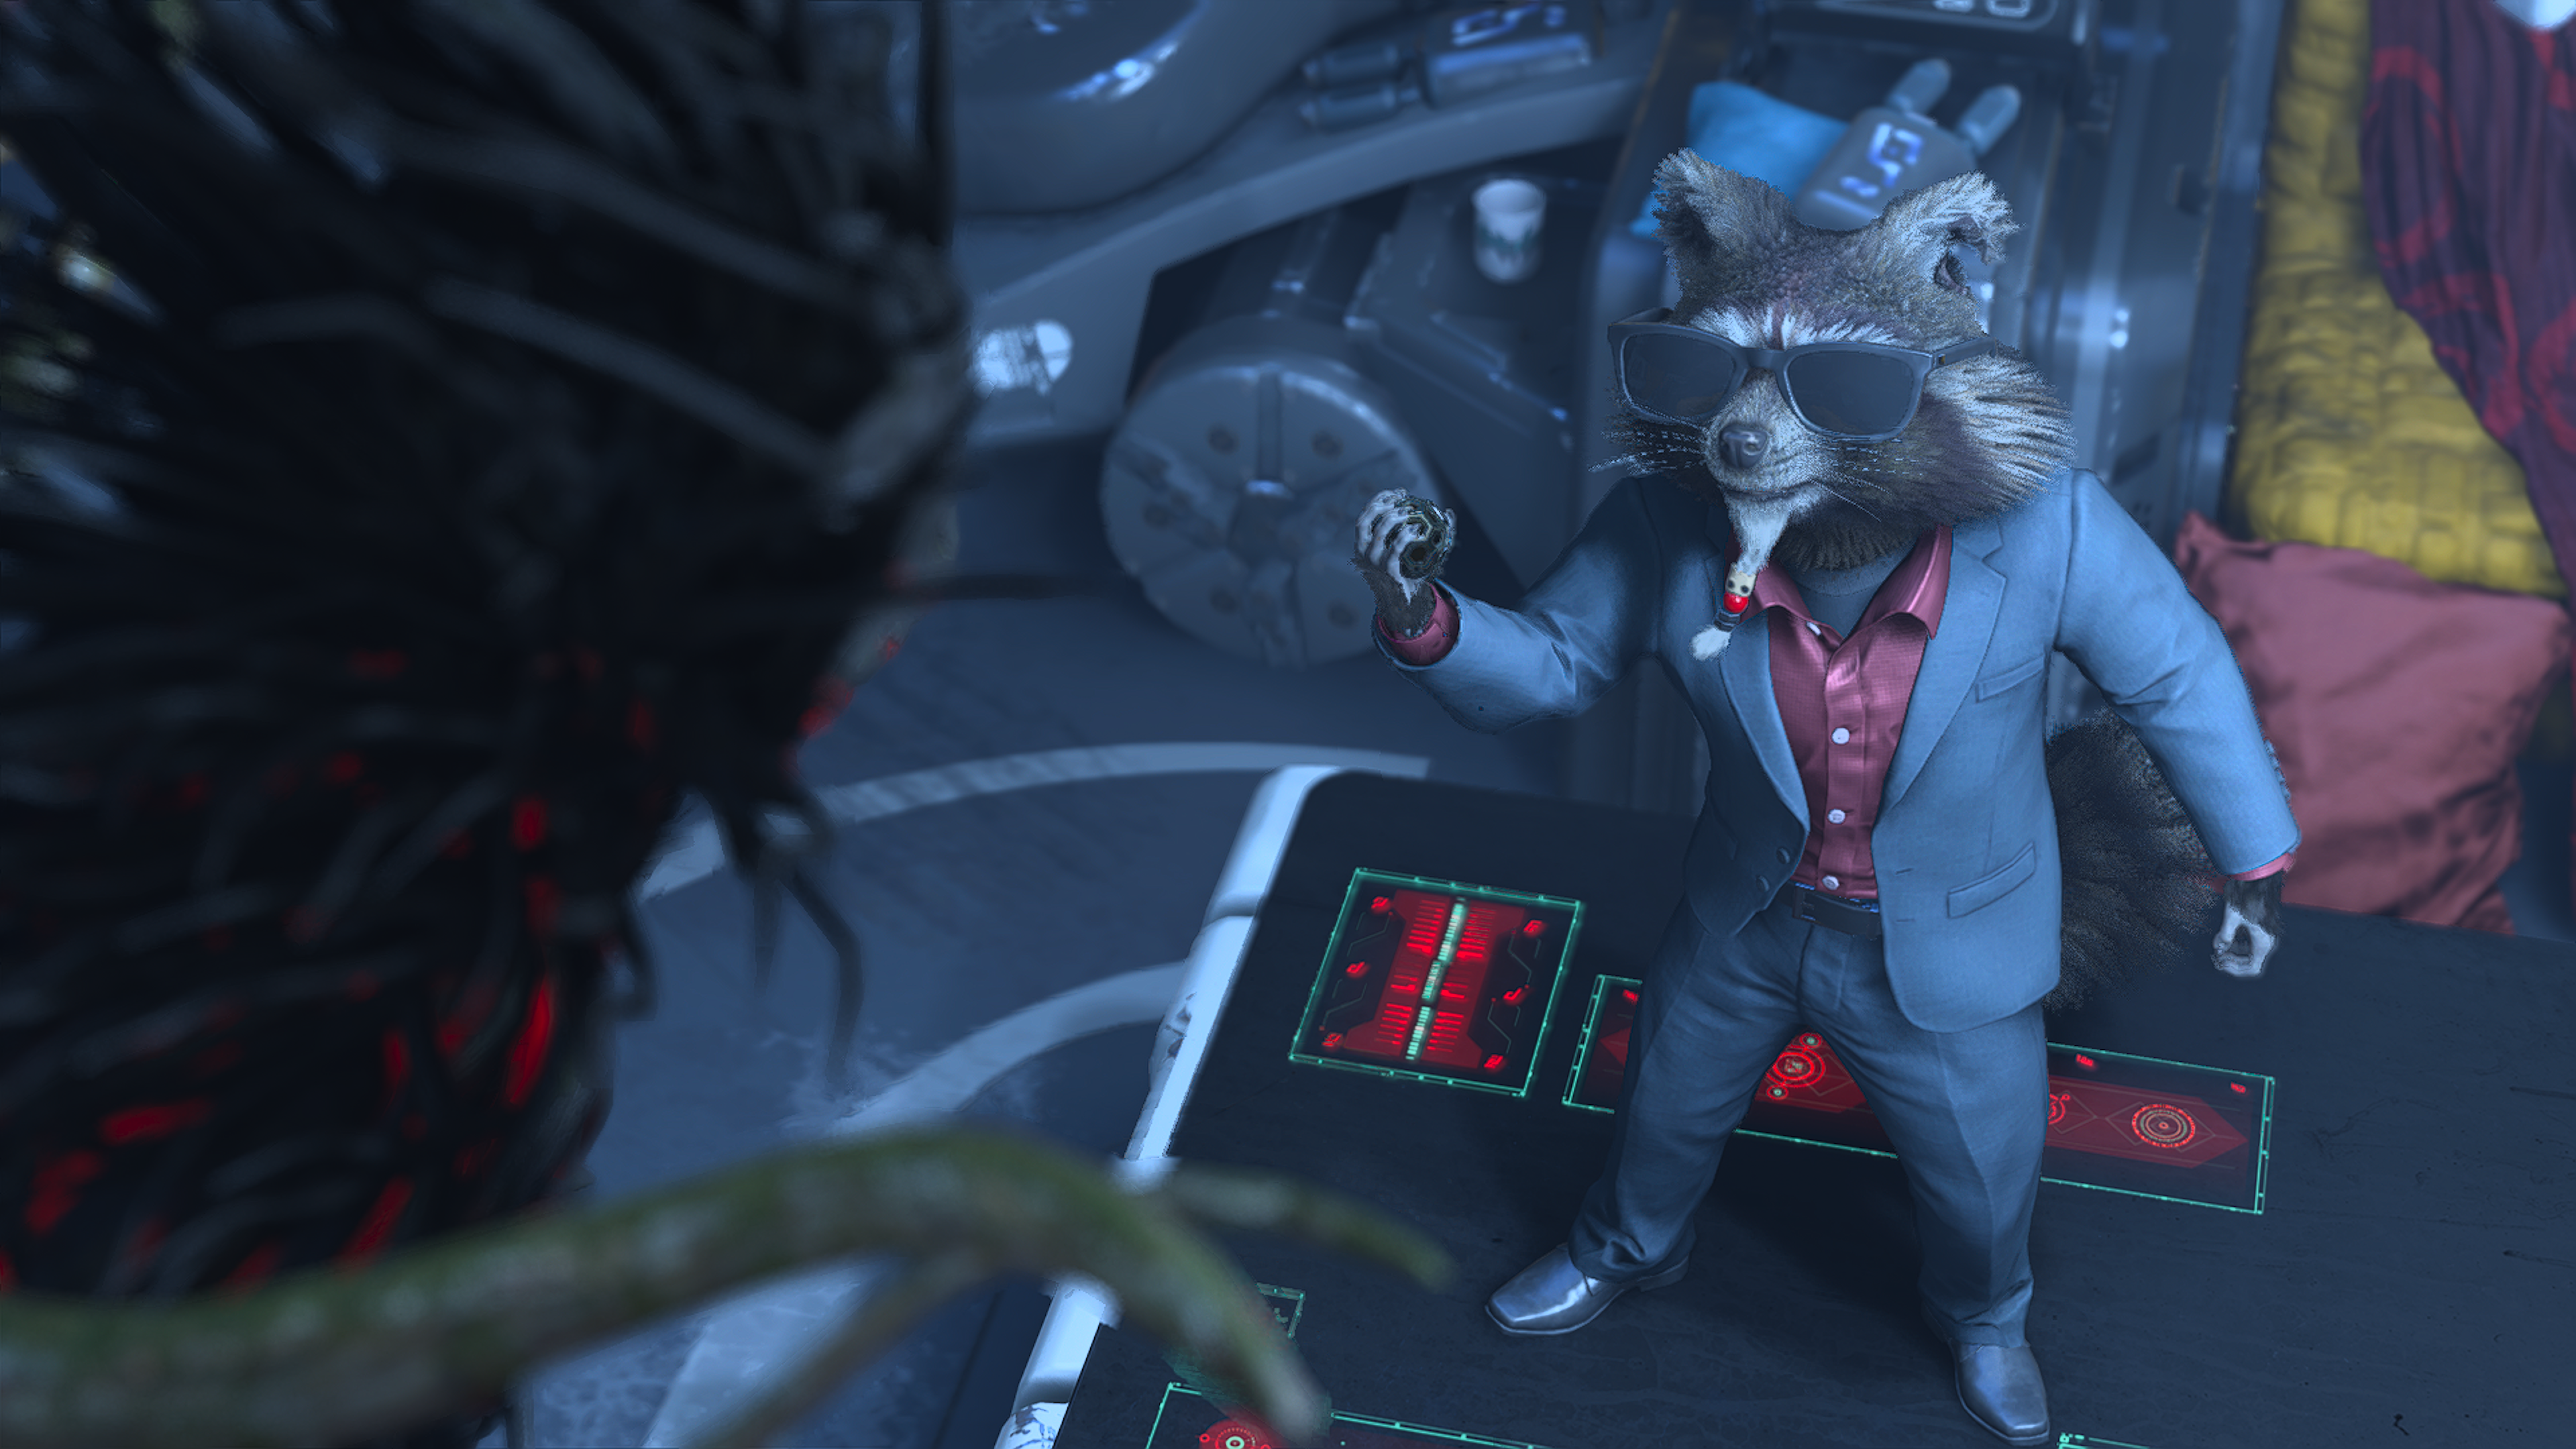 Rocket from Marvel's Guardians of the Galaxy in a suit